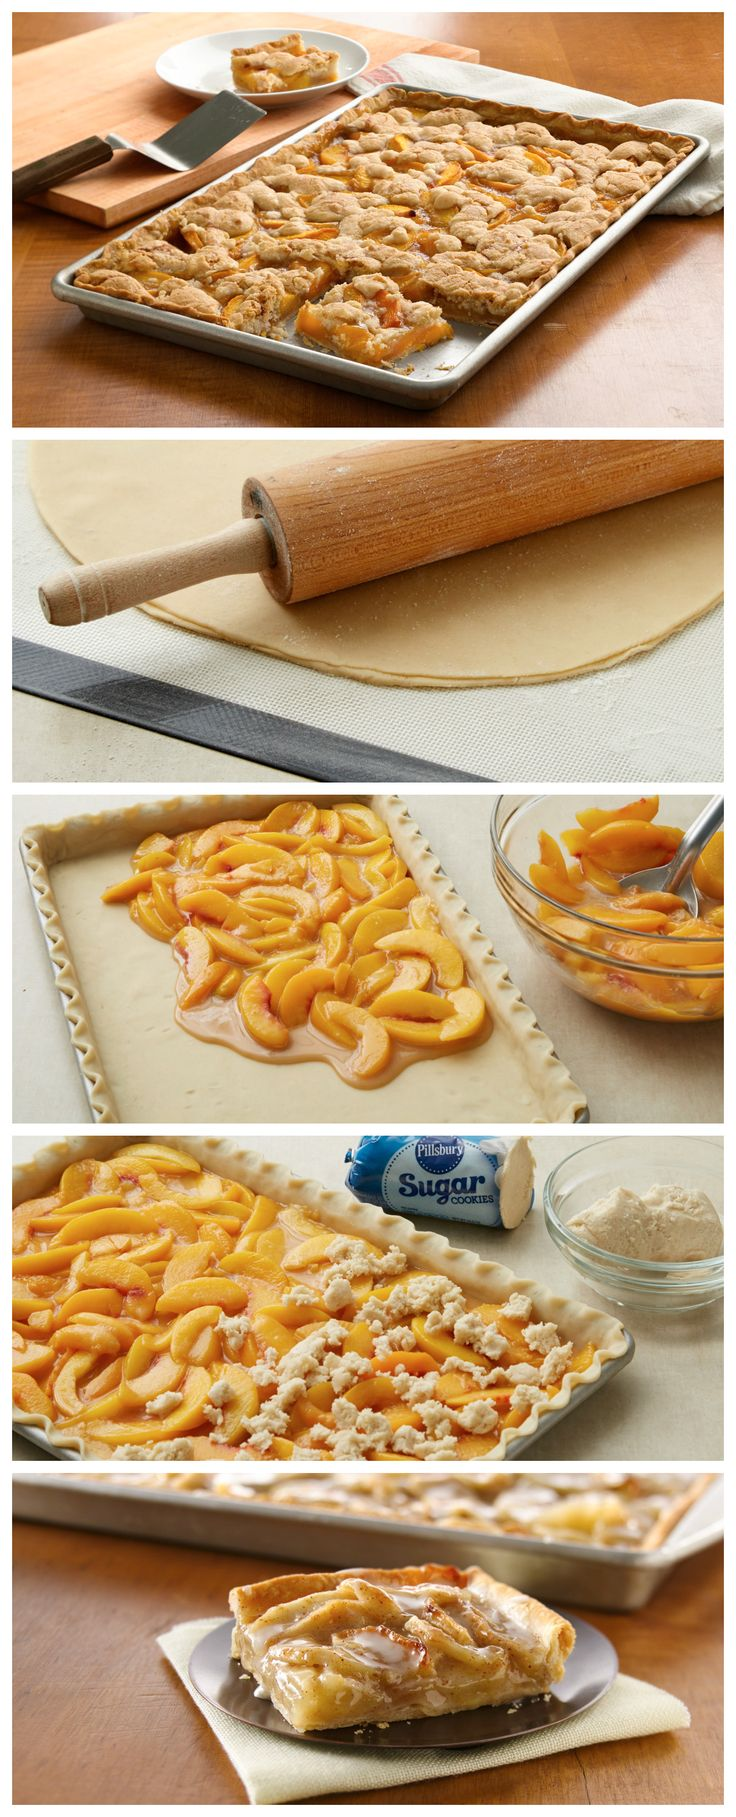 Here's a crowd-size option, Peach Slab Pie! Made with pie crust, cookie dough and fresh peaches, it doesn't get any better than this.